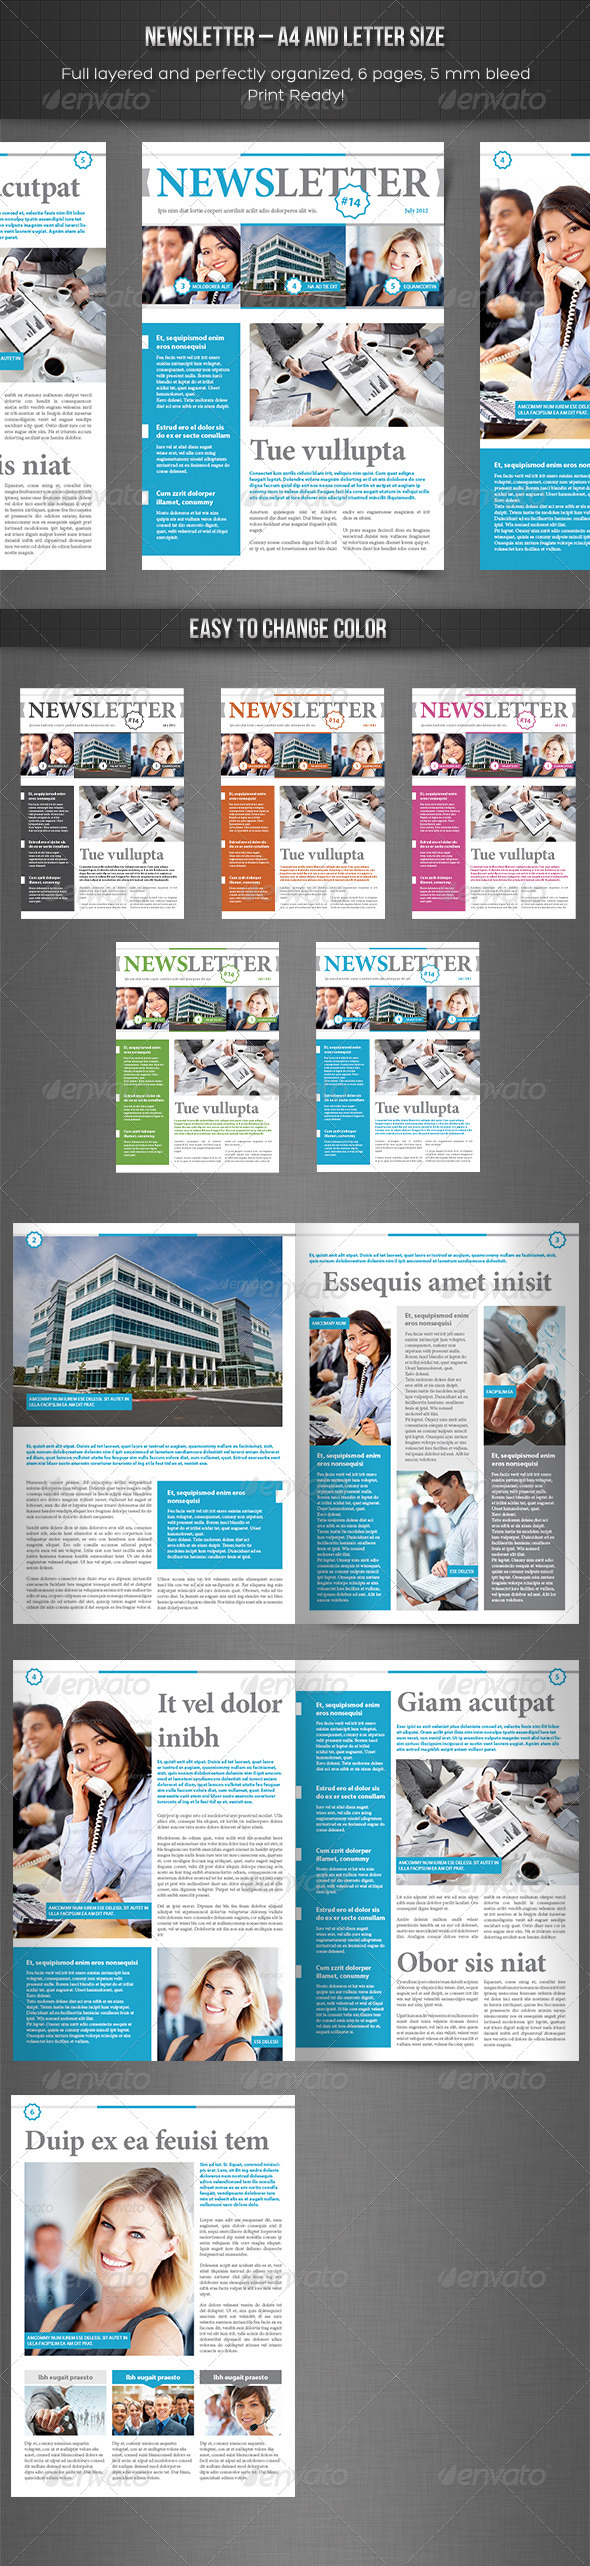 Newsletter vol. 3  Indesign Template - Newsletters Print Templates